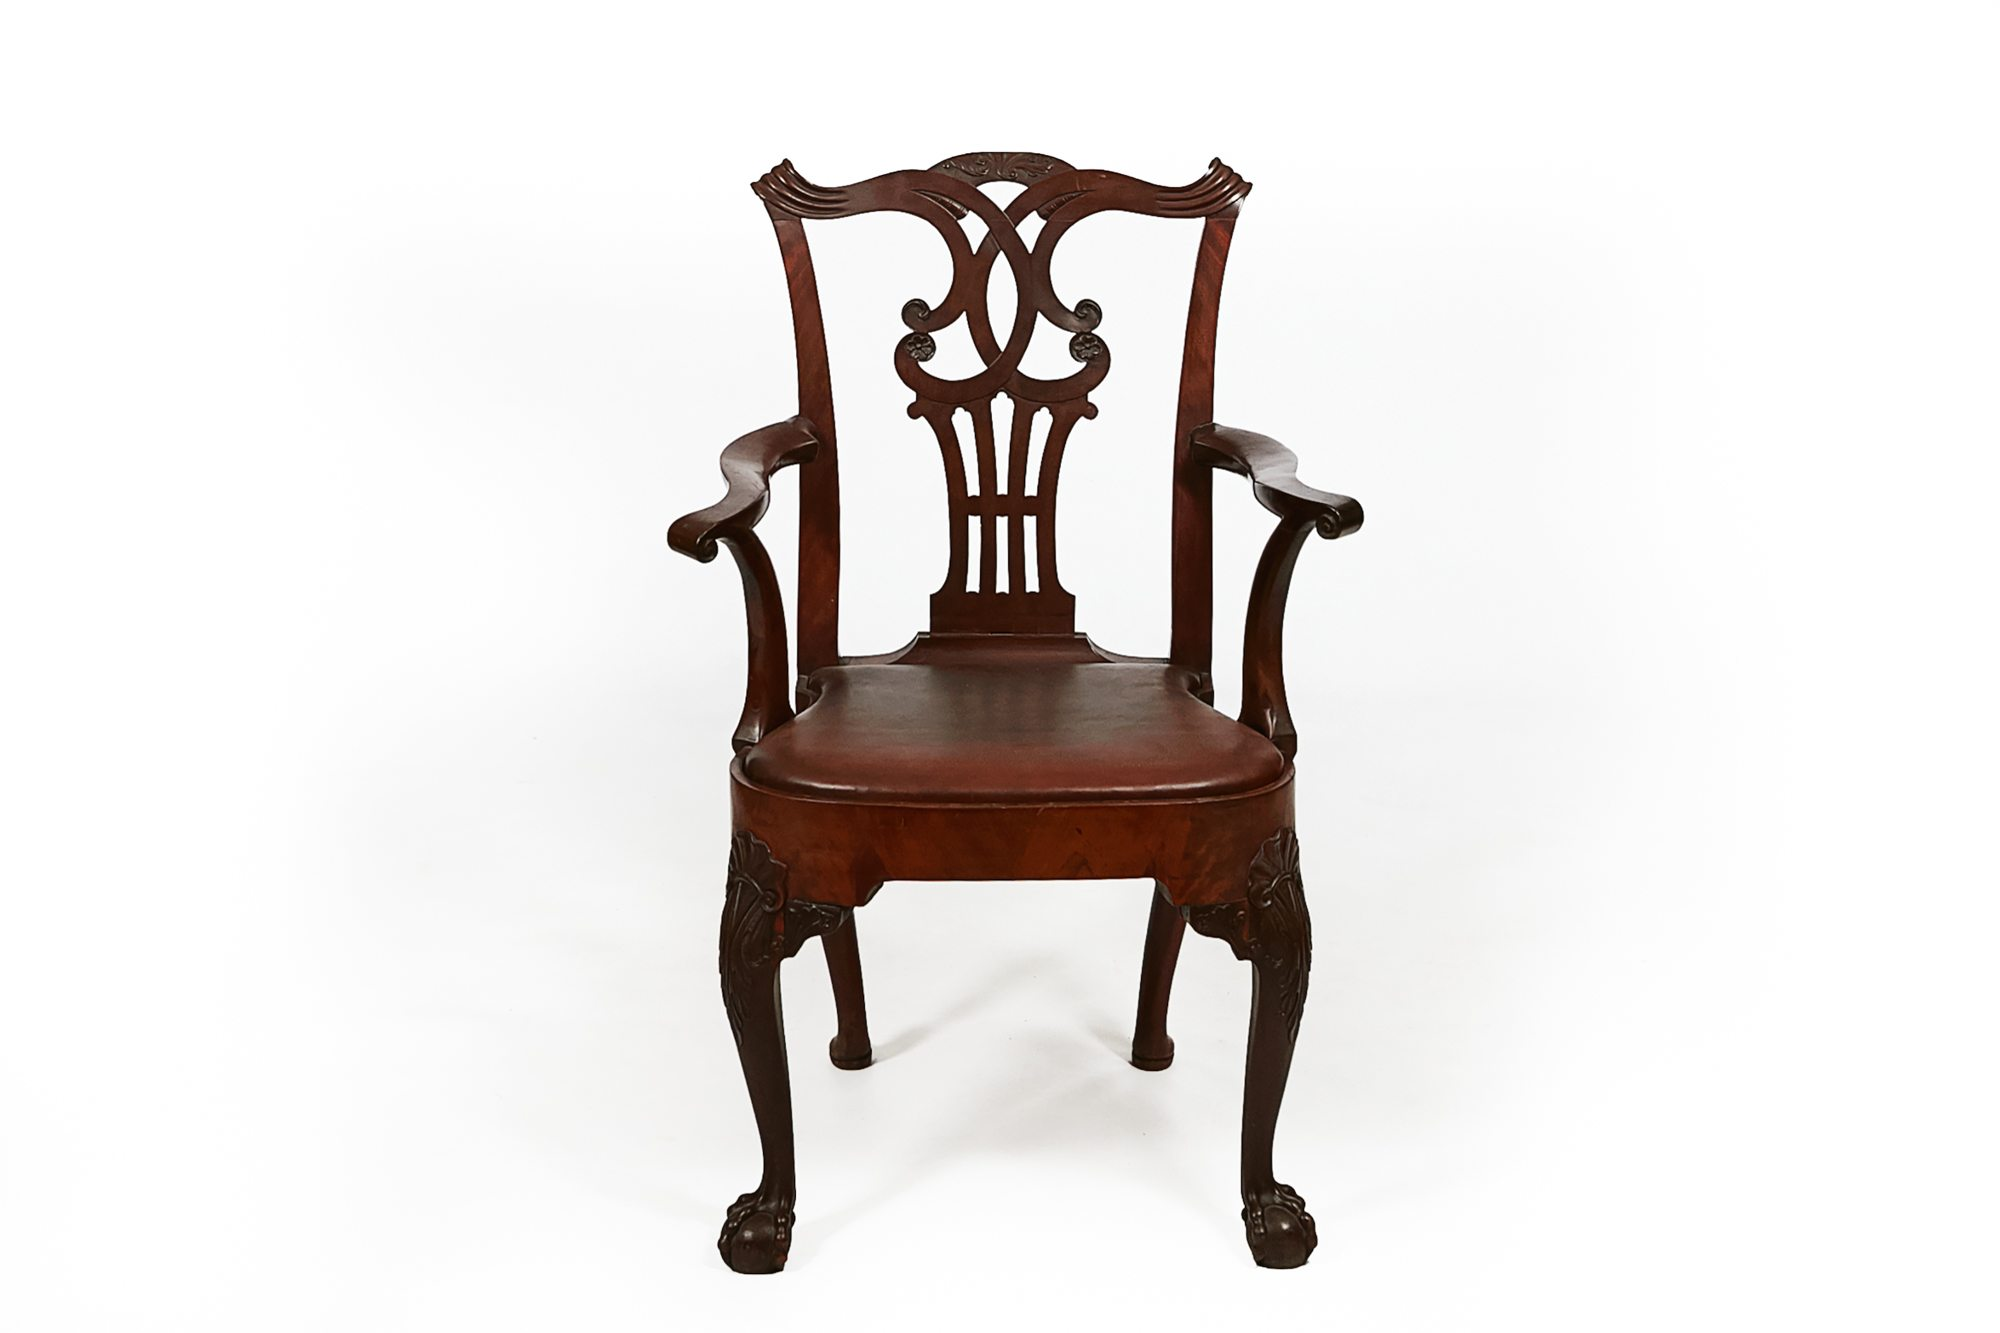 Tremendous 9864 18Th Century Georgian Irish Mahogany Carver O Machost Co Dining Chair Design Ideas Machostcouk